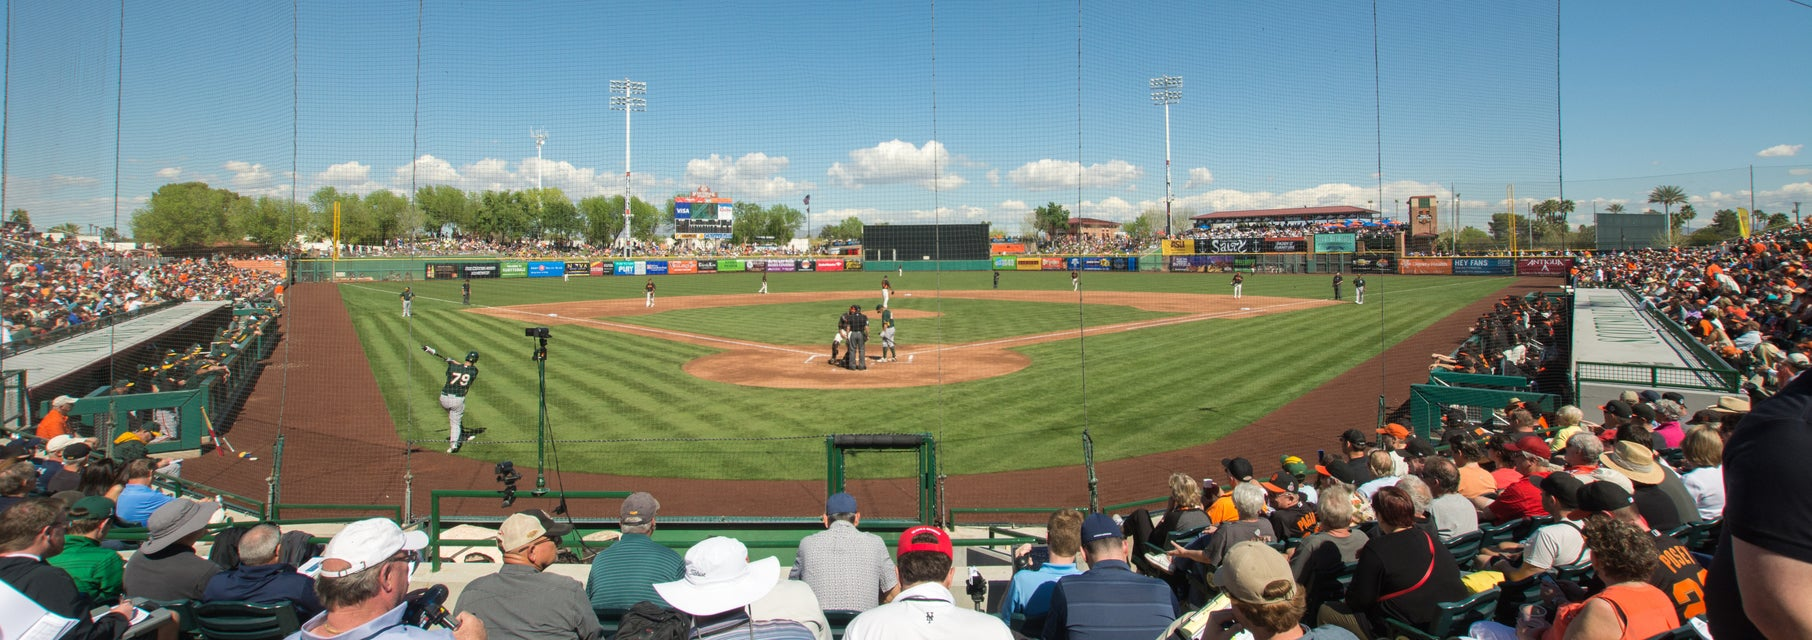 Giants - Spring Training Tickets